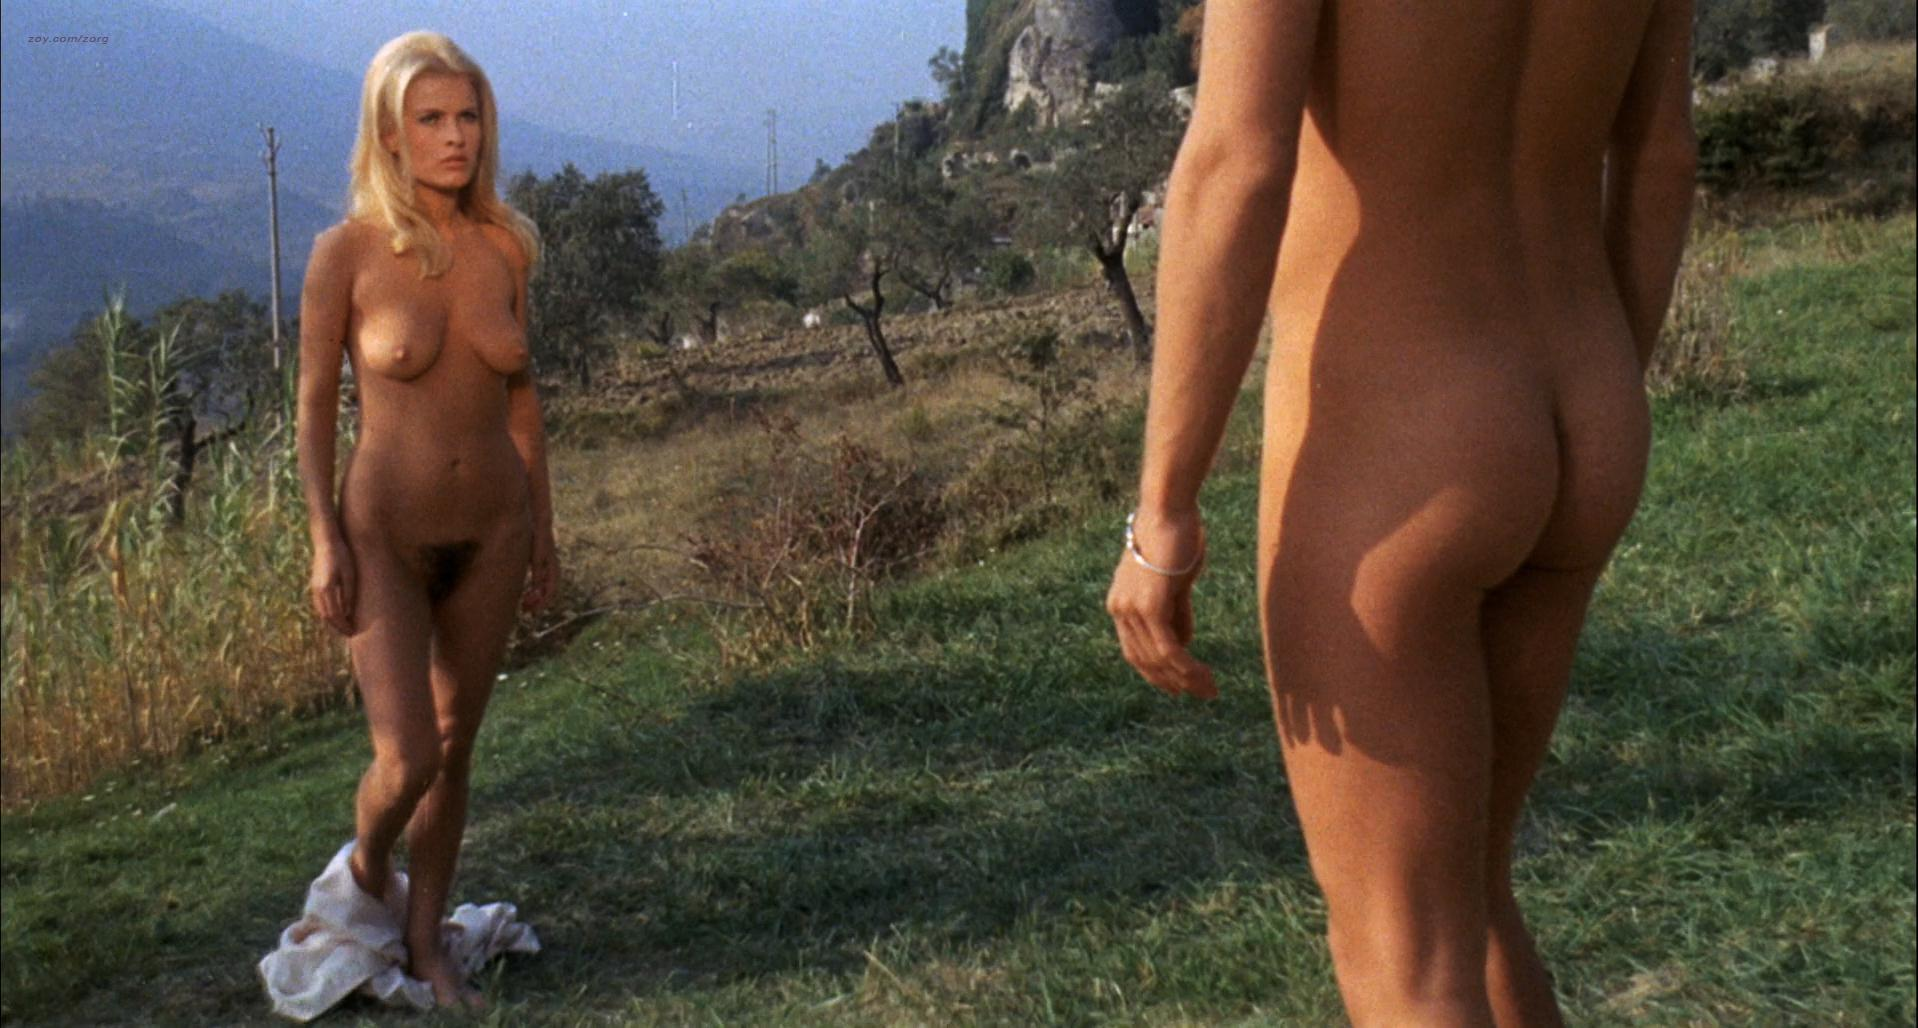 Silvana Venturelli nude, Erika Remberg nude - The Lickerish Quartet (1970)